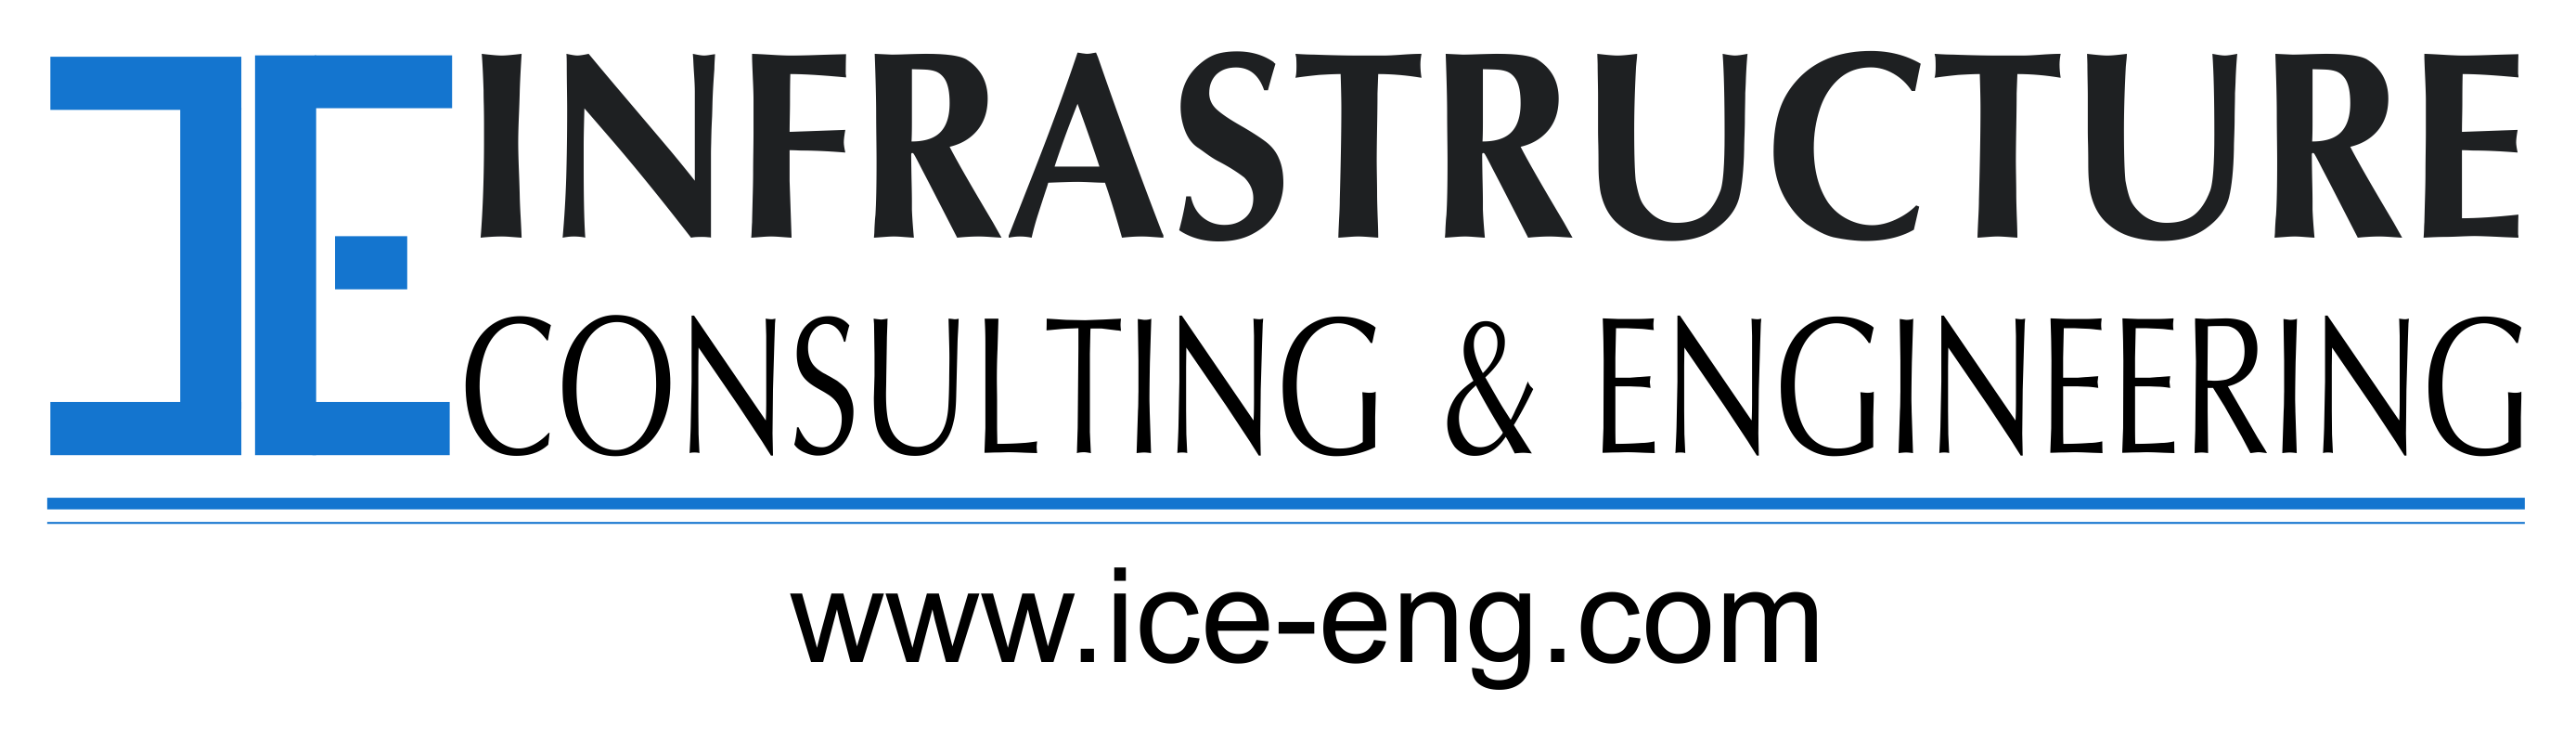 Infrastructure Consulting & Engineering Logo